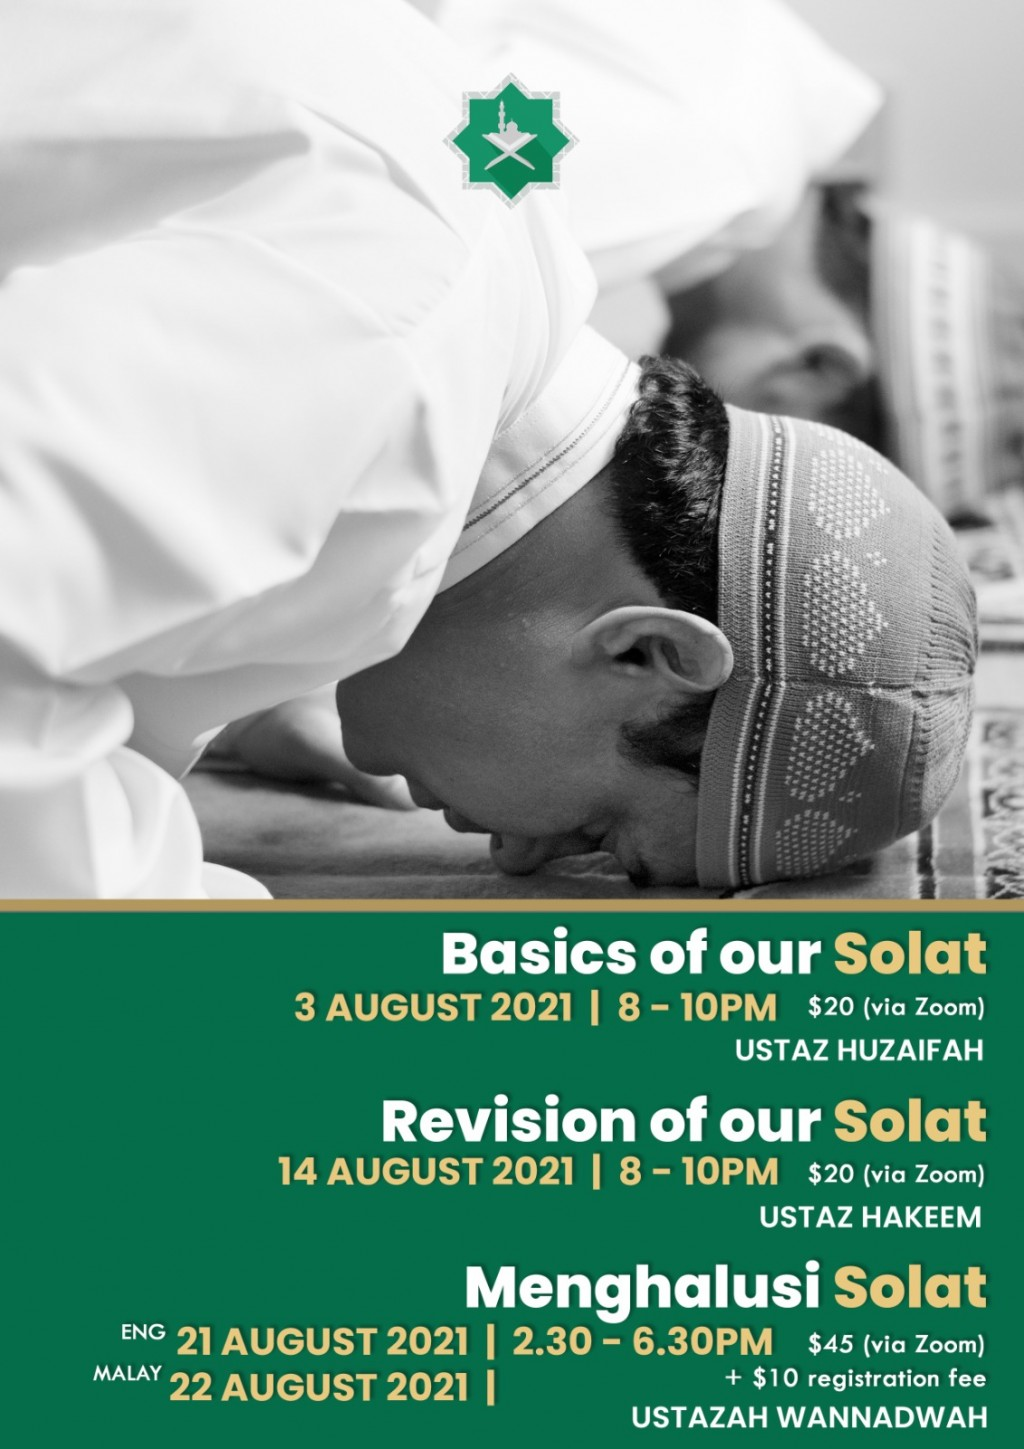 Let's Learn To Solat - A Basic to Advance Solat Guidance For The Whole Family